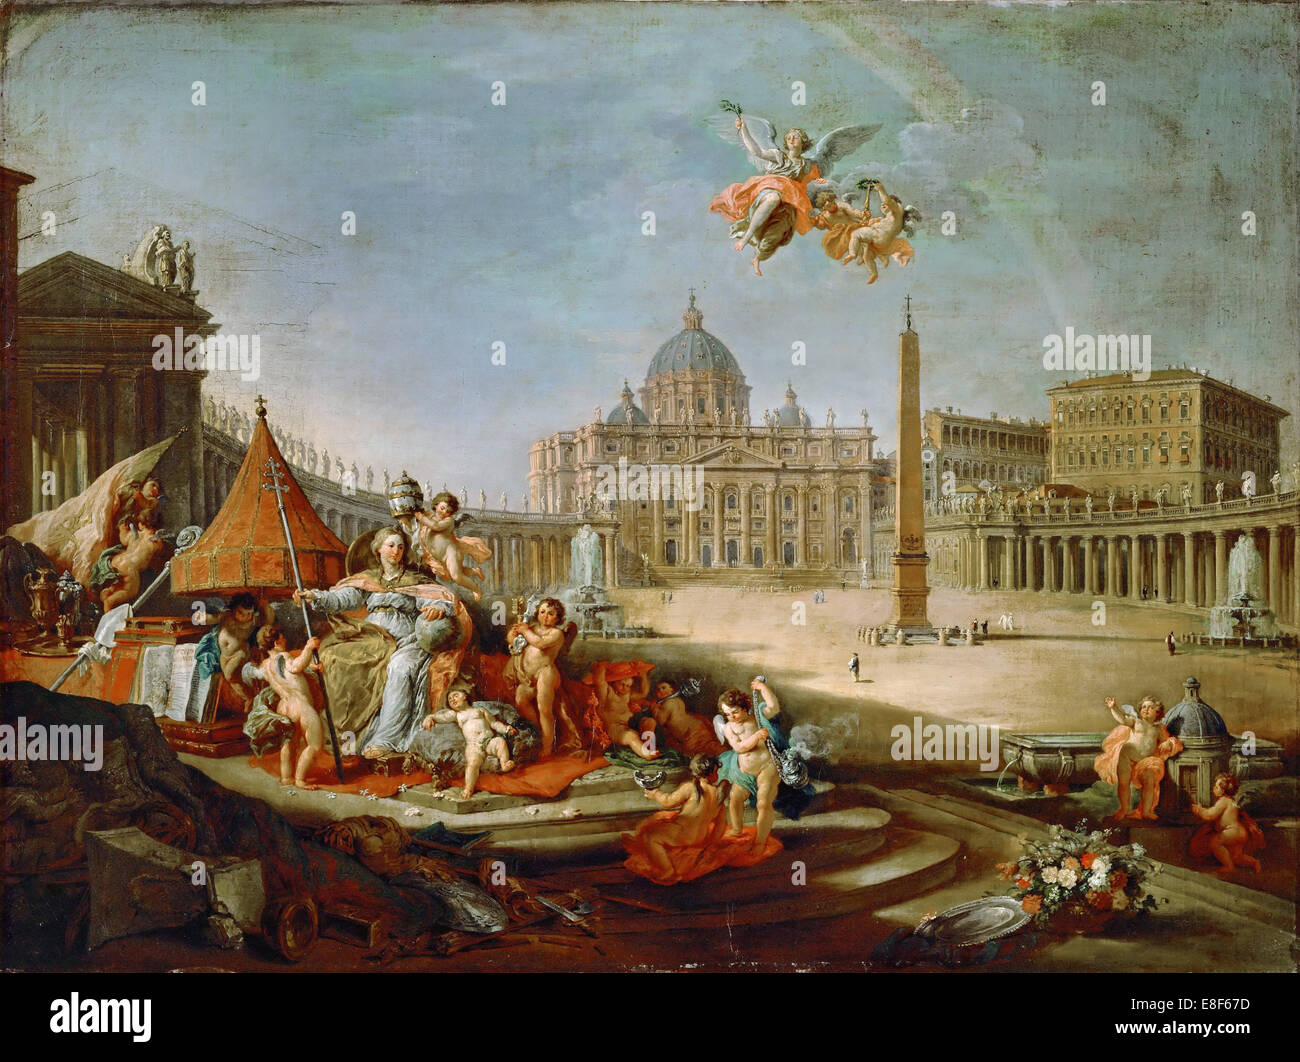 Piazza San Pietro, Rome with an allegory of the Triumph of the Papacy. Artist: Panini, Giovanni Paolo (1691-1765) - Stock Image